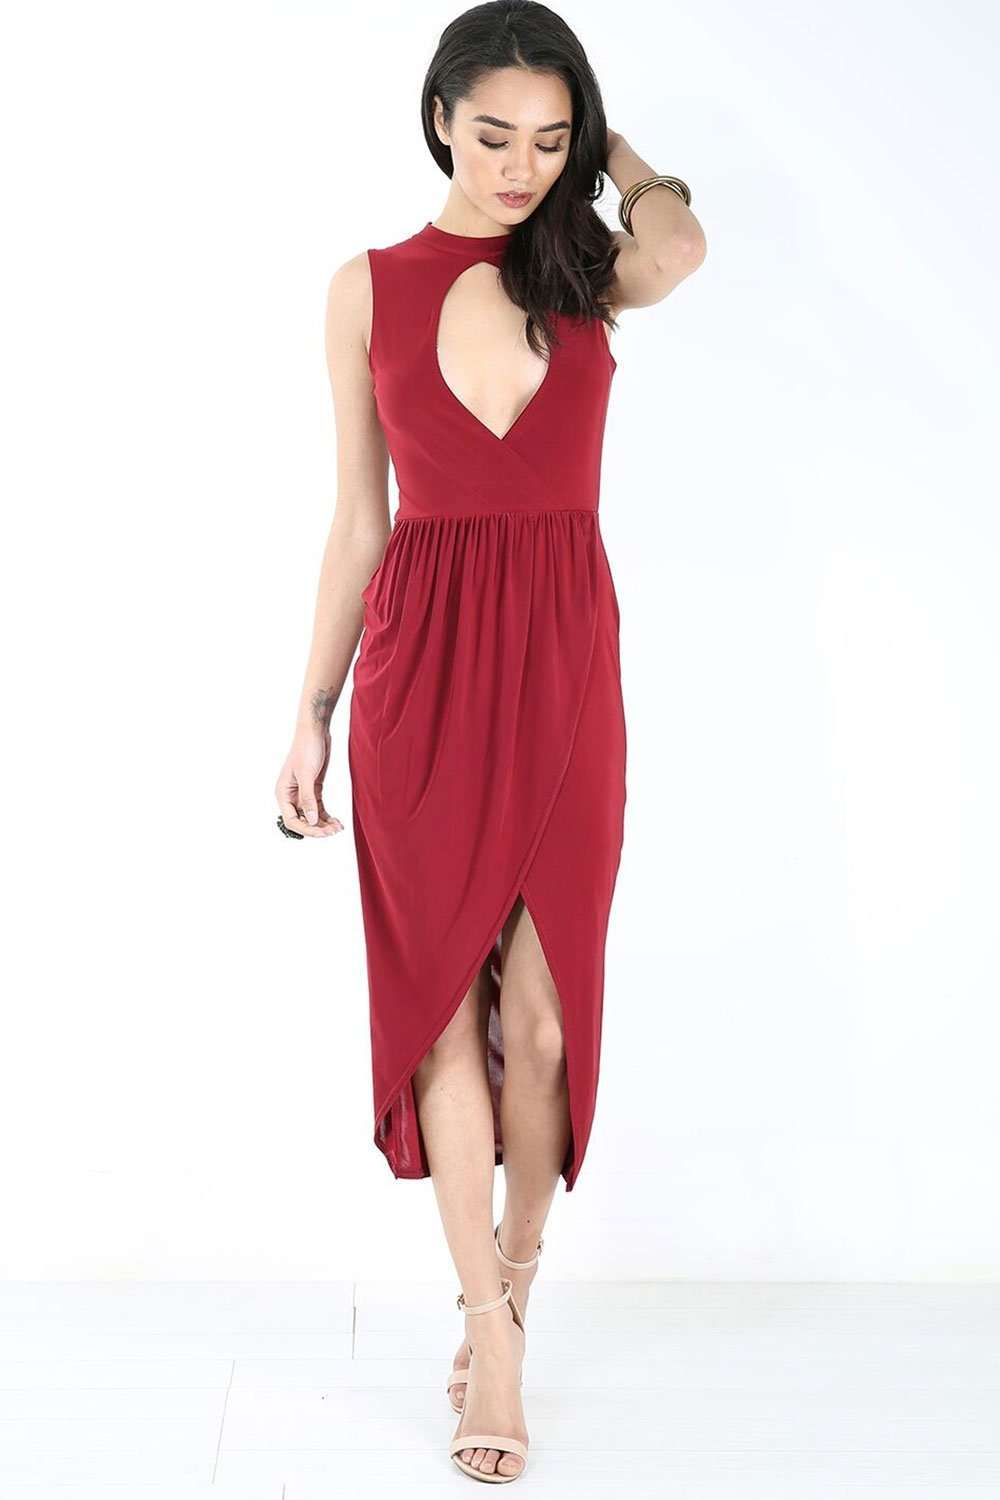 Choker Neck Red Midaxi Wrap Dress - bejealous-com